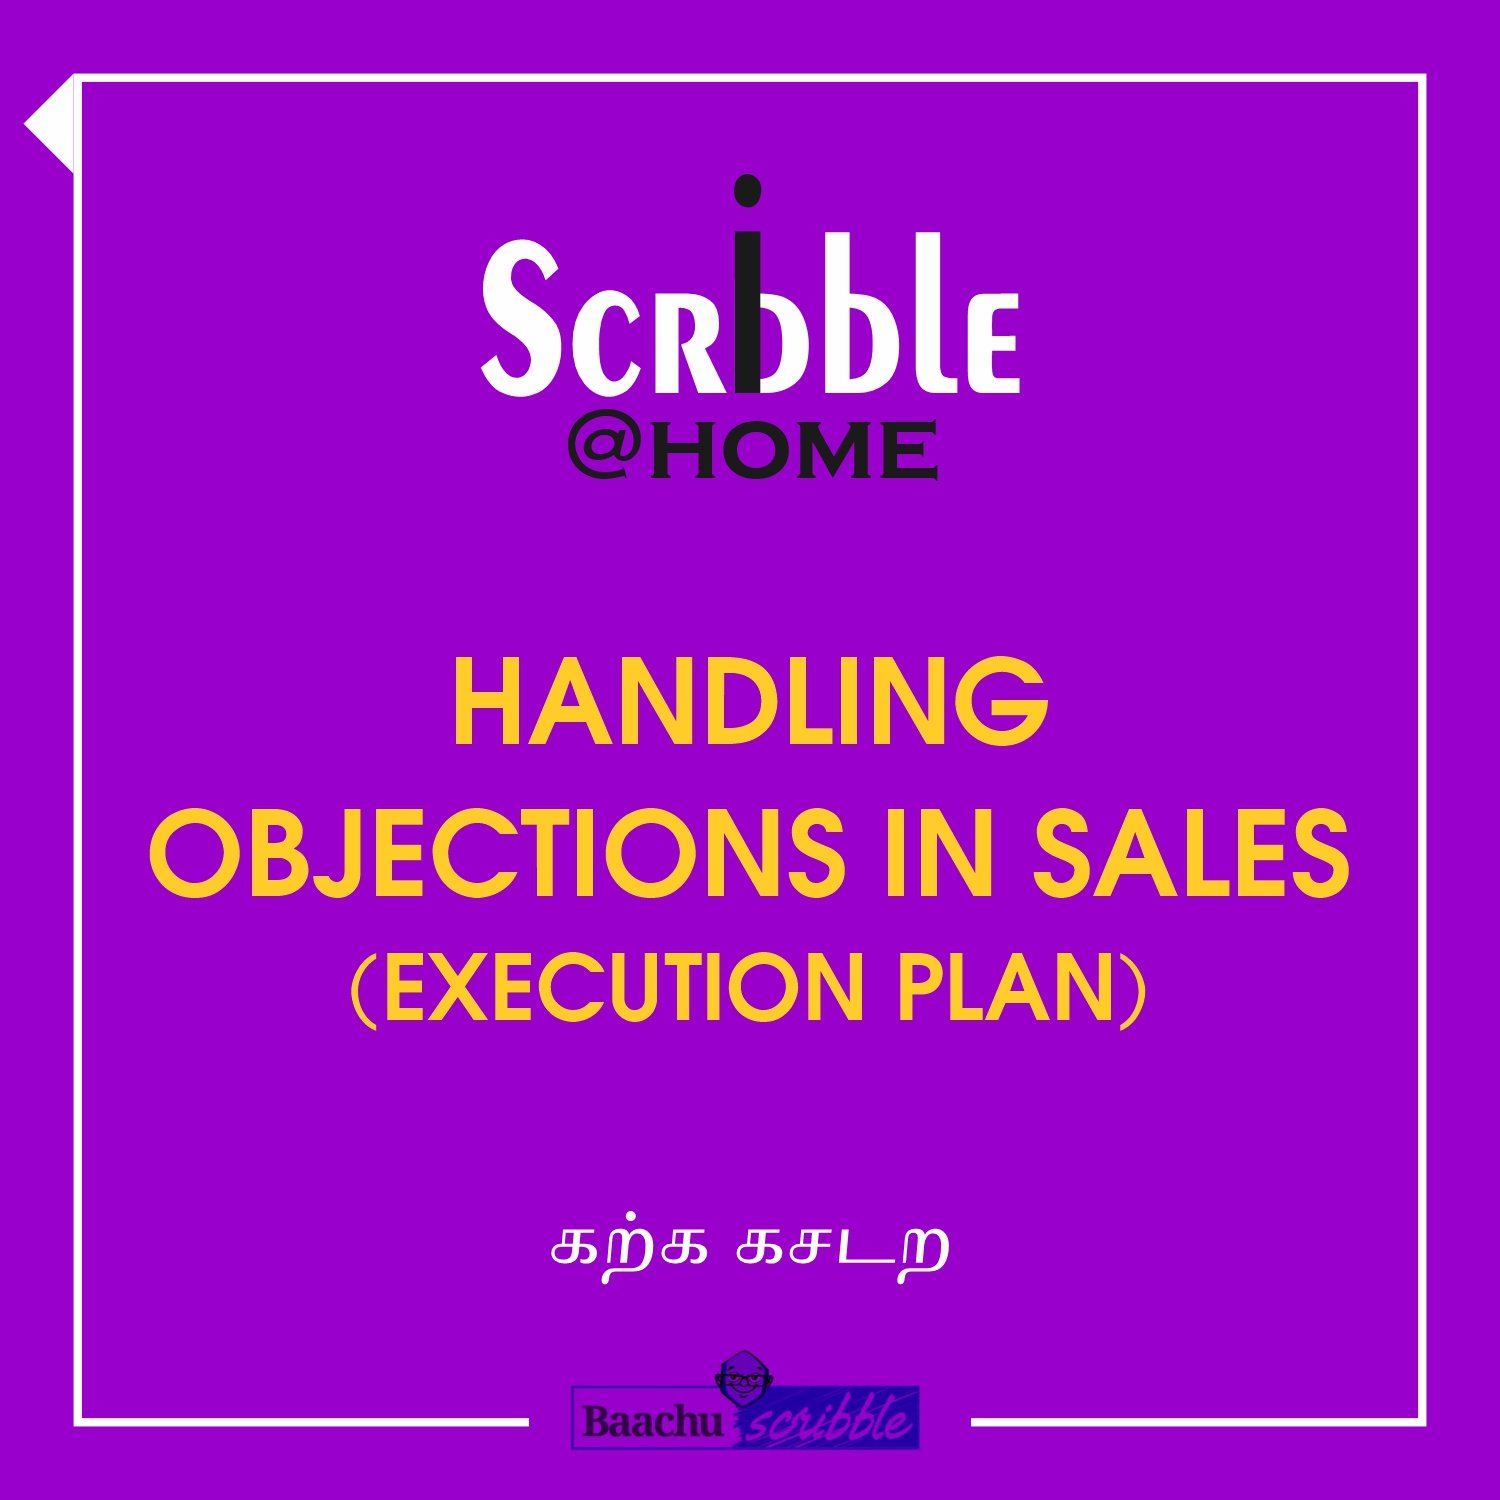 Handling Objections in Sales (Execution Plan)